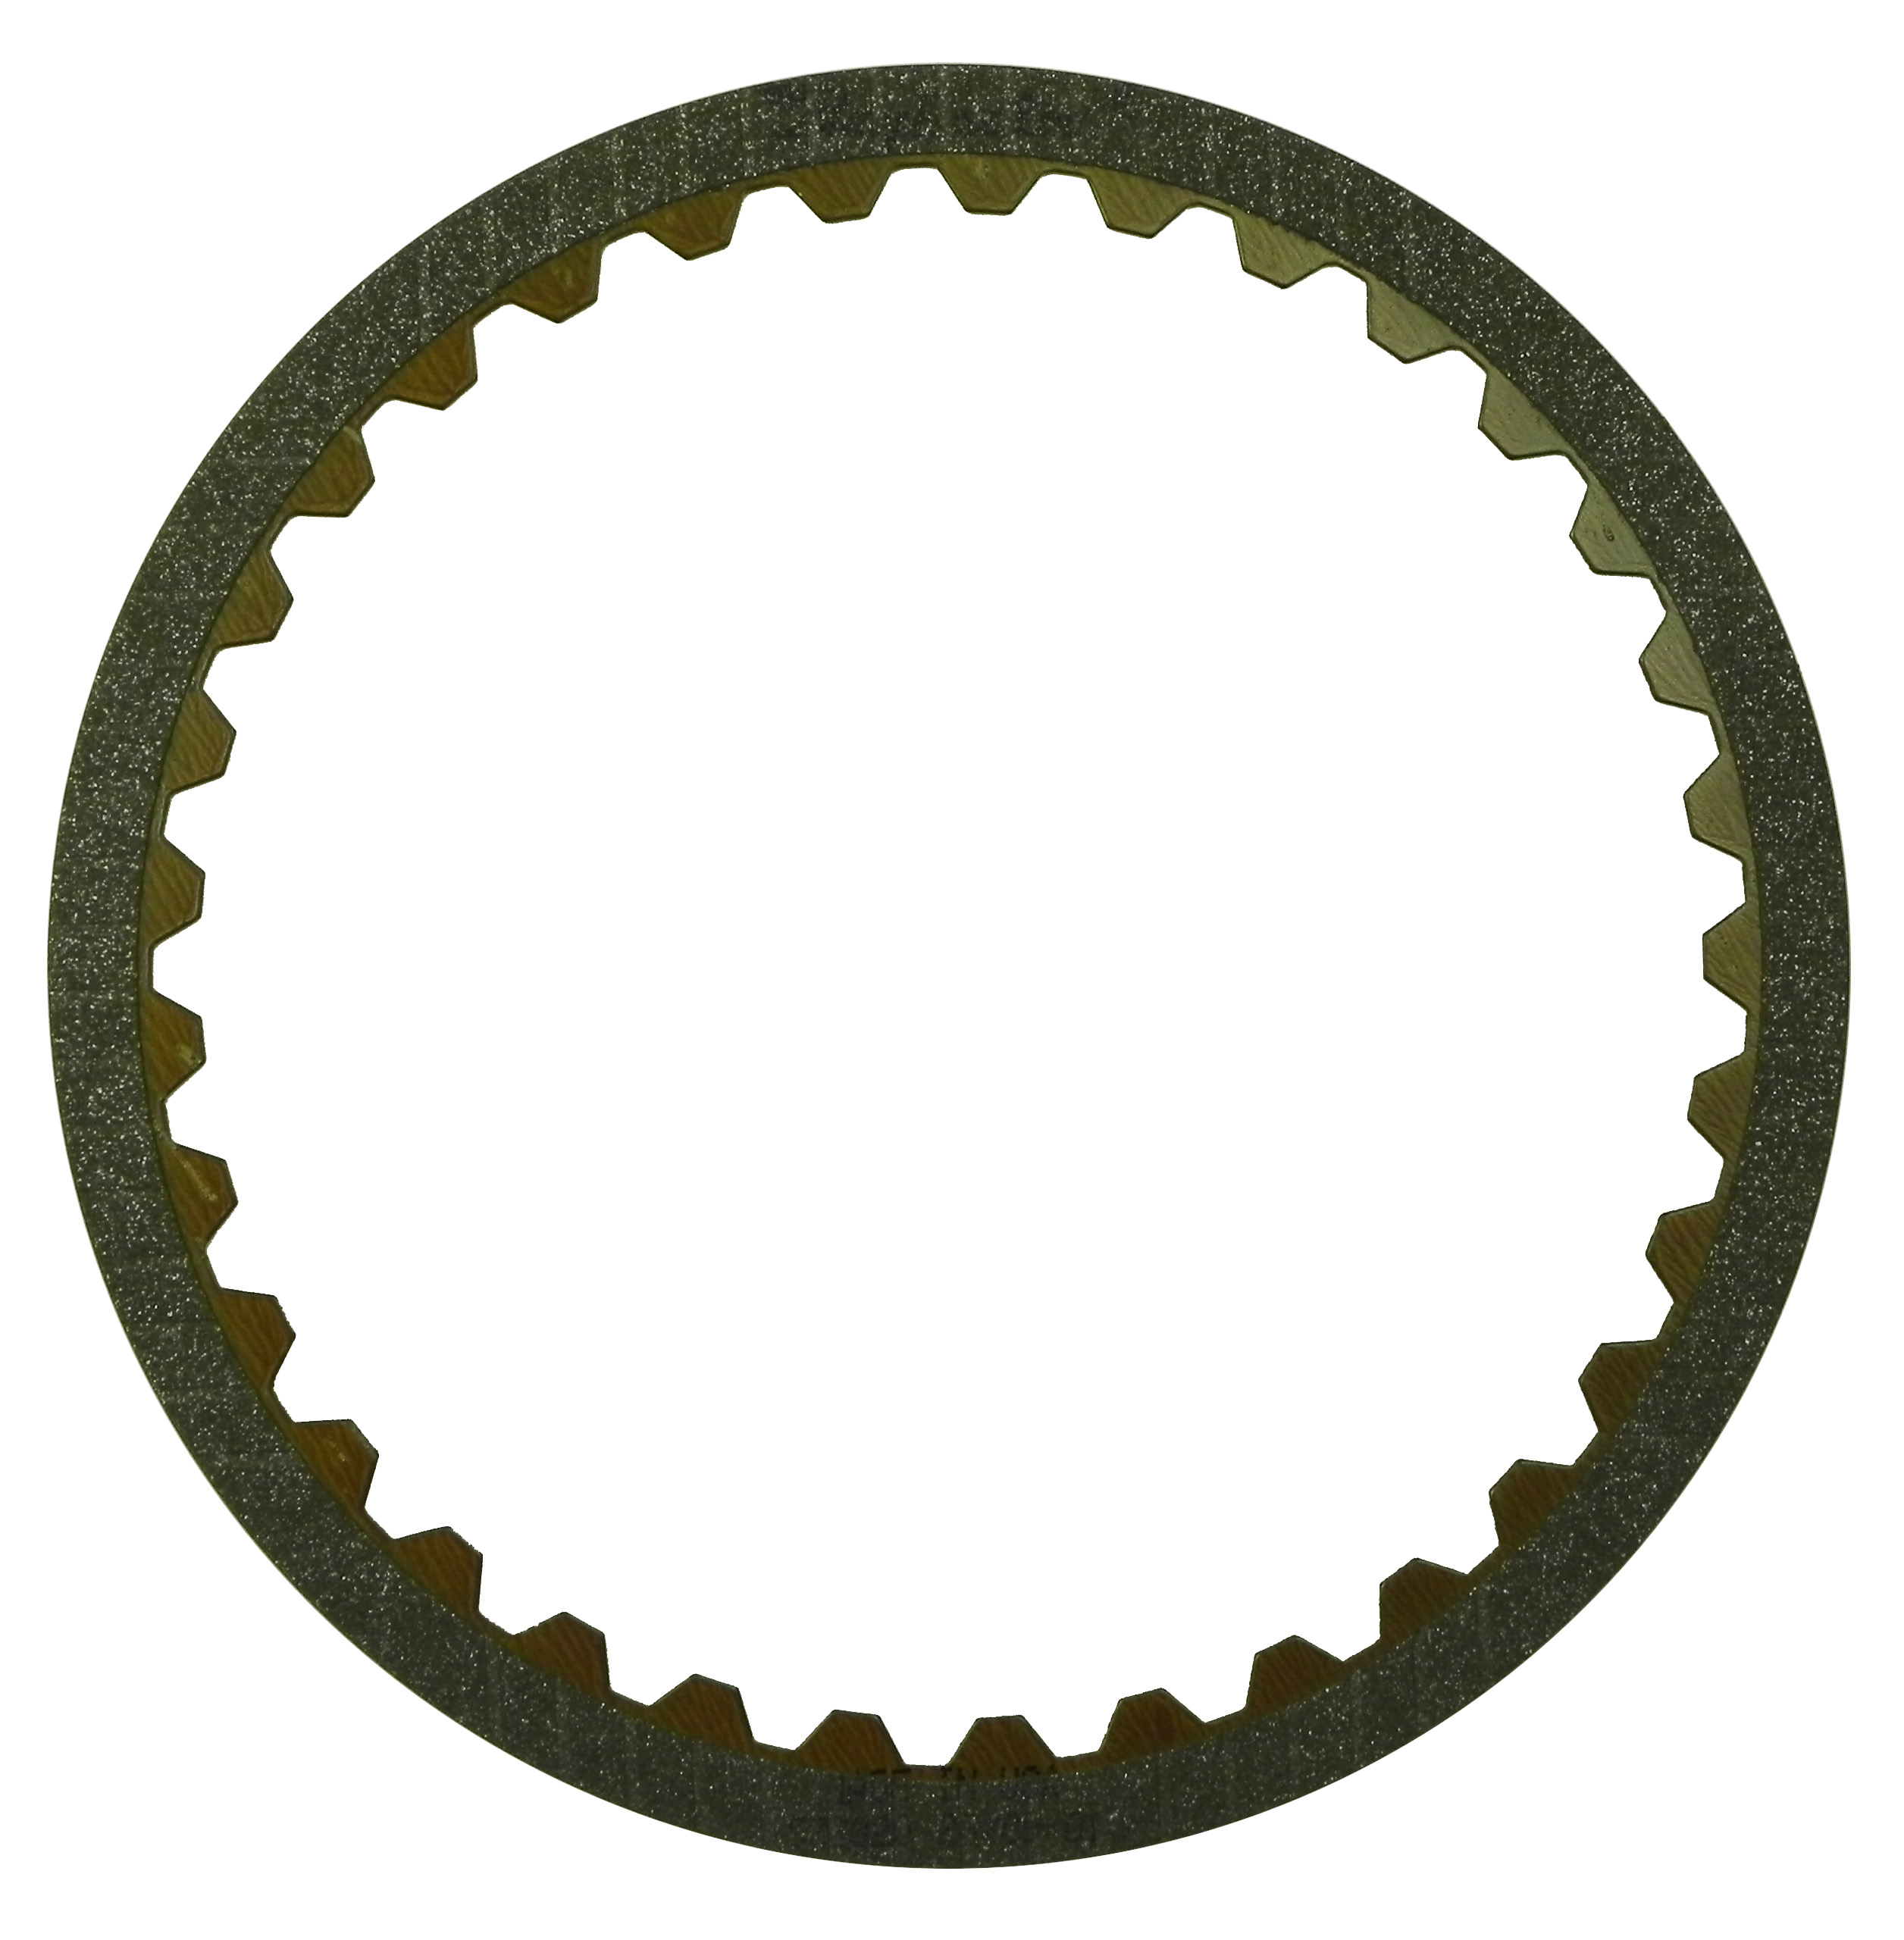 R573820 | 1988-2002 Friction Clutch Plate Graphitic Low, Reverse Graphitic (Infiniti, Twin Turbo)